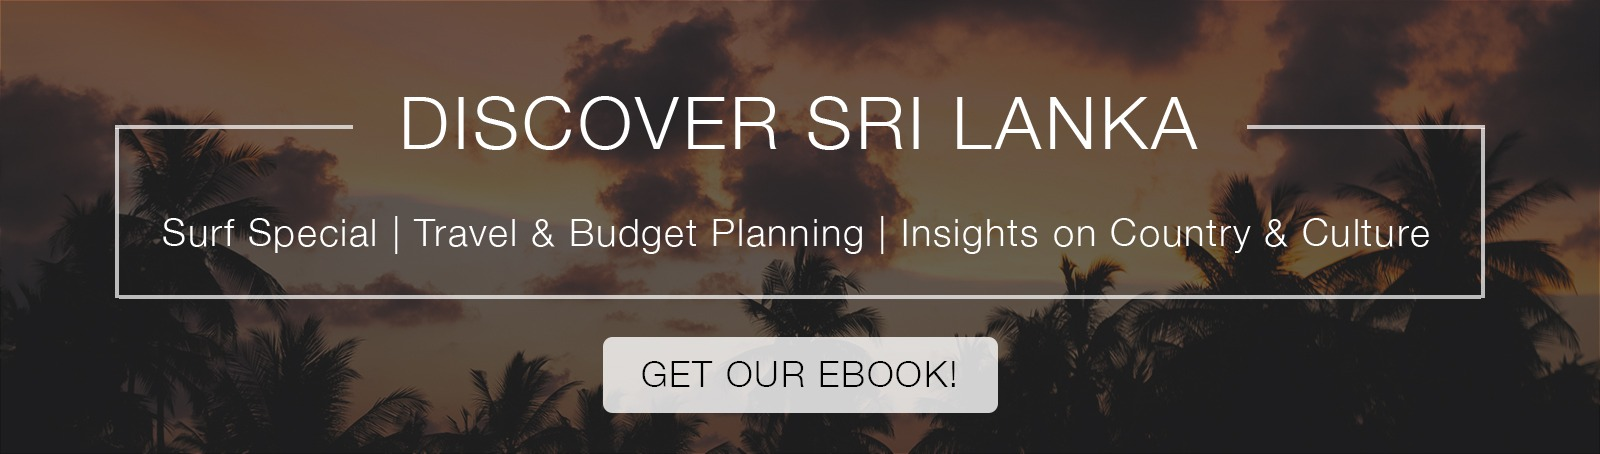 Discover Sri Lanka eBook